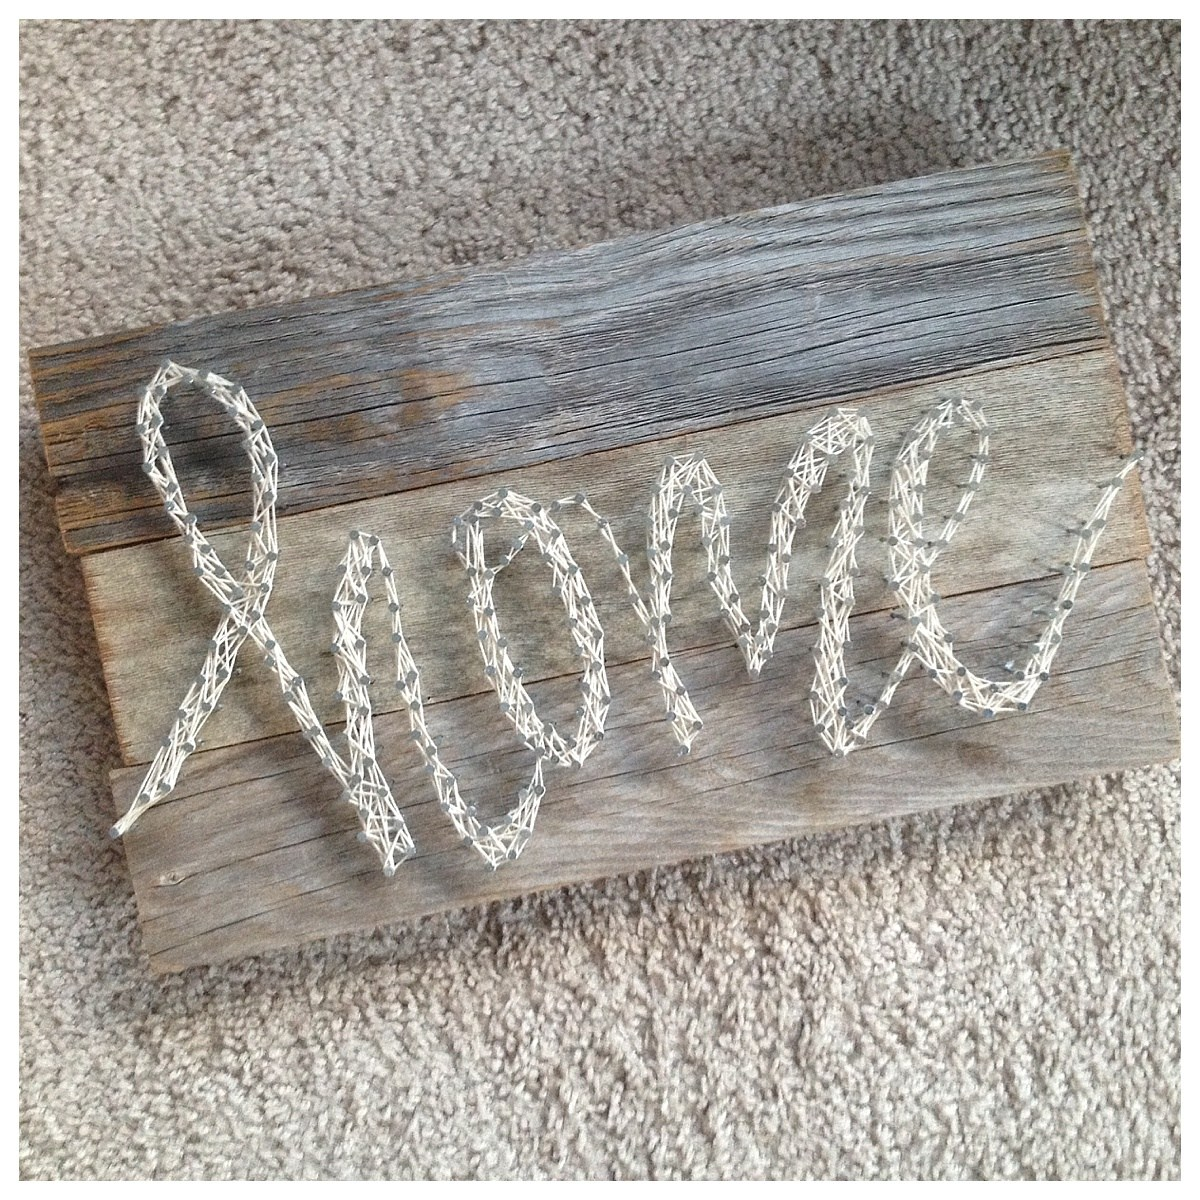 Home String Art Diy T With Free Printable